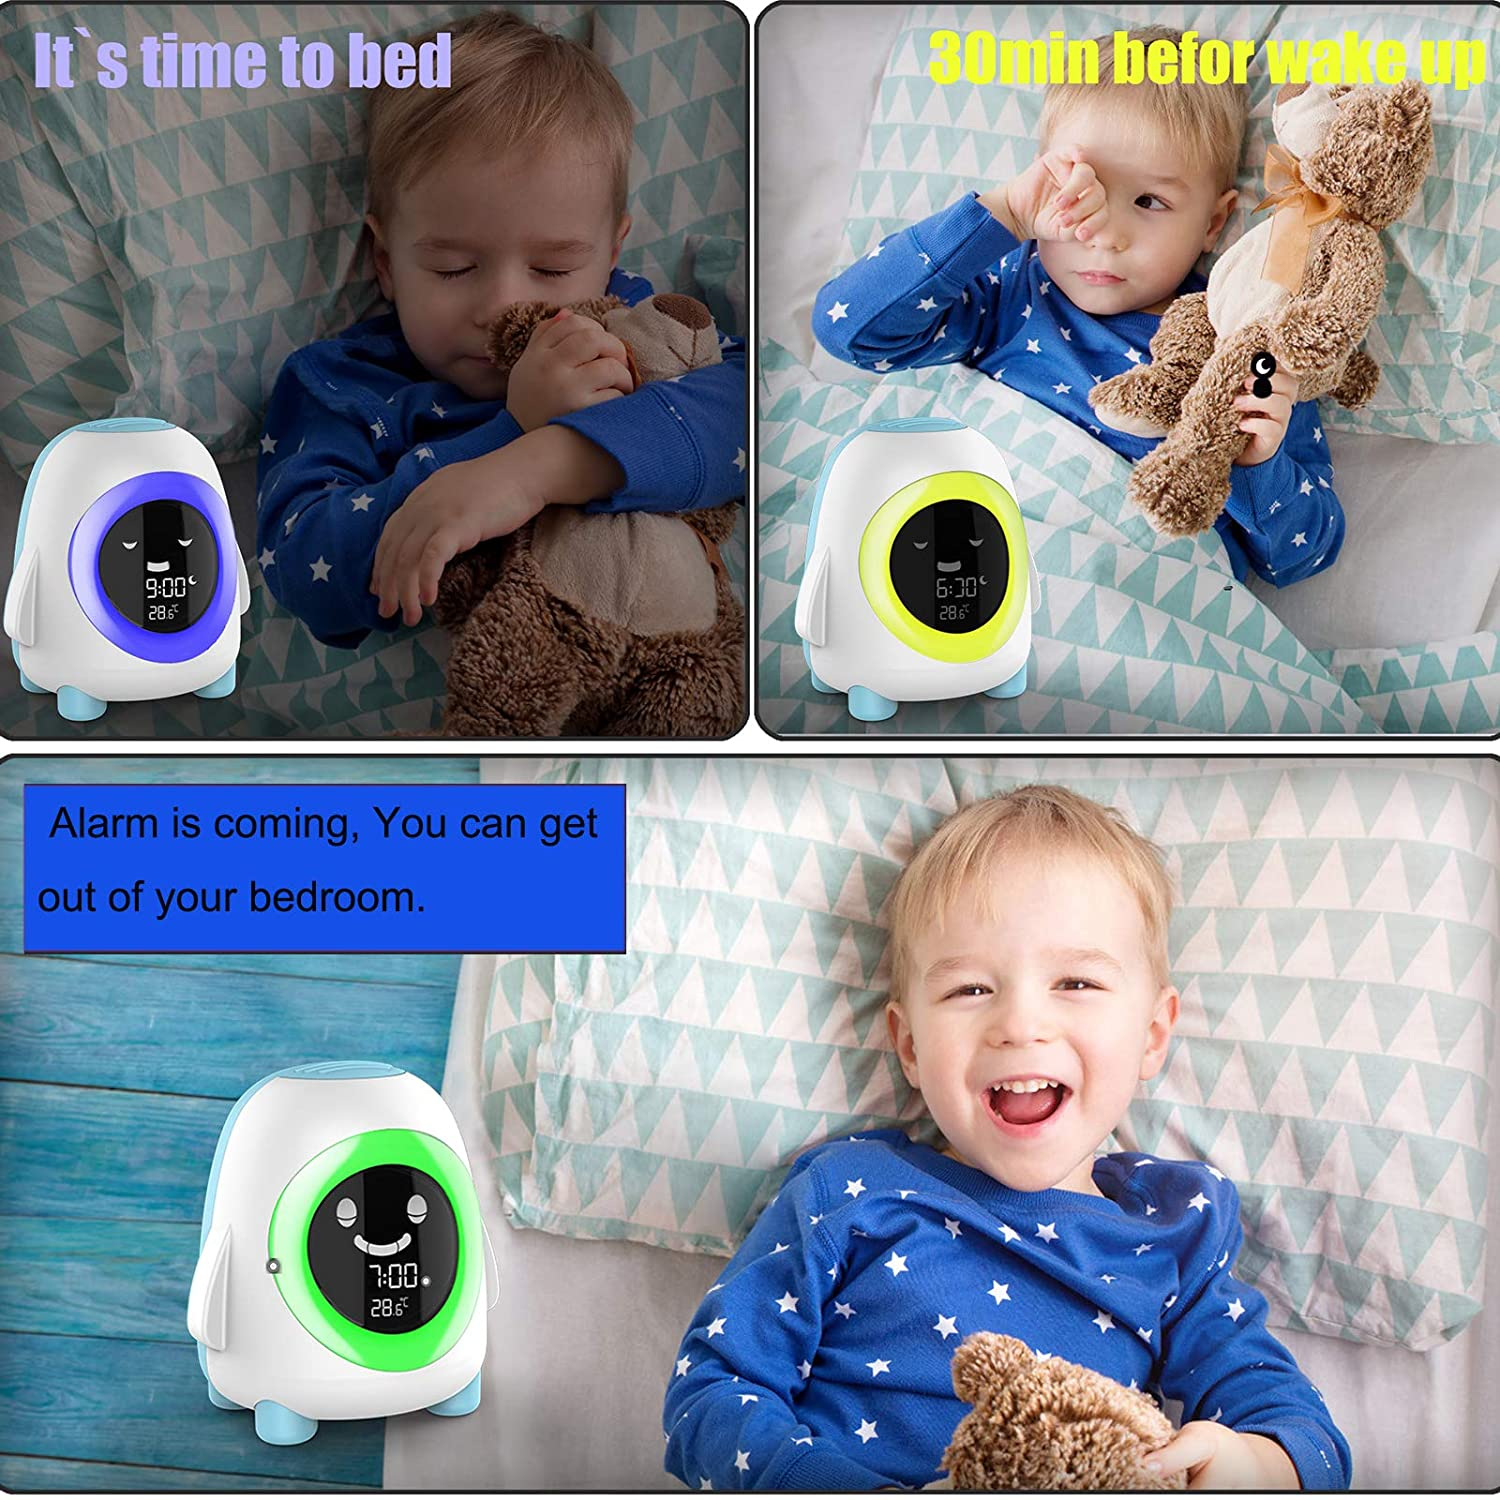 Alarm Clock for Kids ,Digital Wake Up Clock with 5 Color Changeable Night Light, Sleep Sound Machine, NAP Timer, Toddler Children Sleep Trainer Bedside Kids Alarm Clock for Boys Girls Bedroom